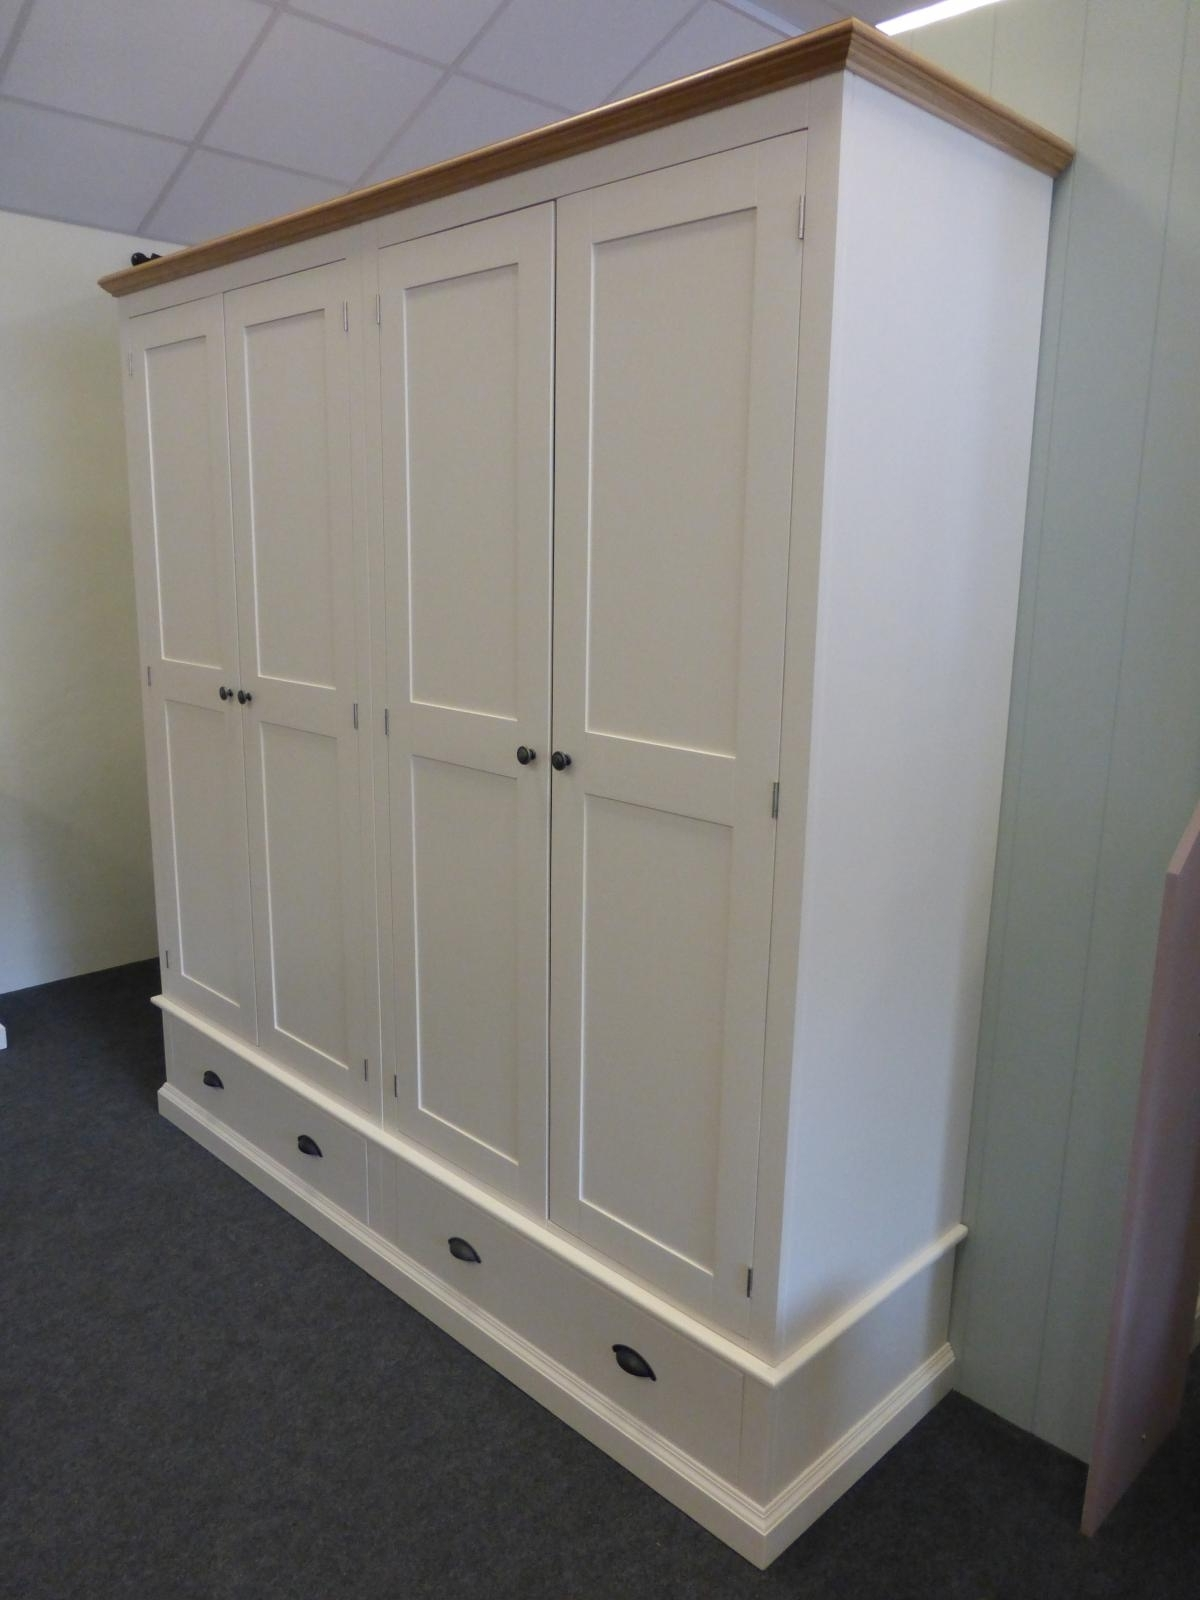 Tall Wardrobes Intended For Preferred Painted Tall Quad Wardrobe – Painted – Wardrobes – Pine Shop Bury (View 15 of 15)